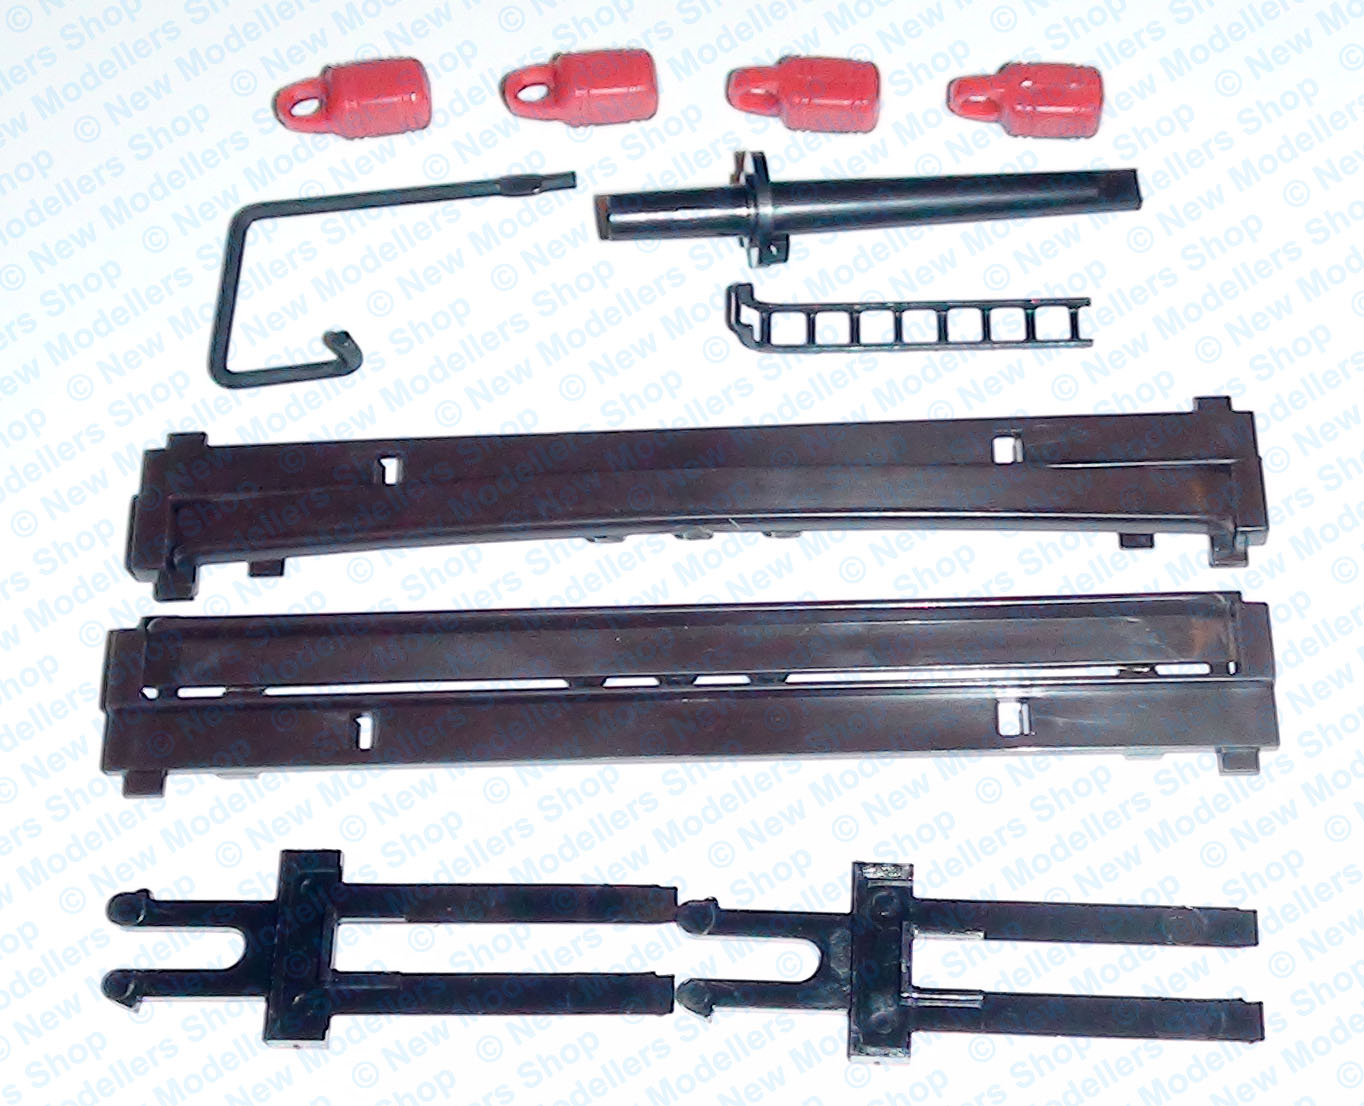 Spares for hornby trains